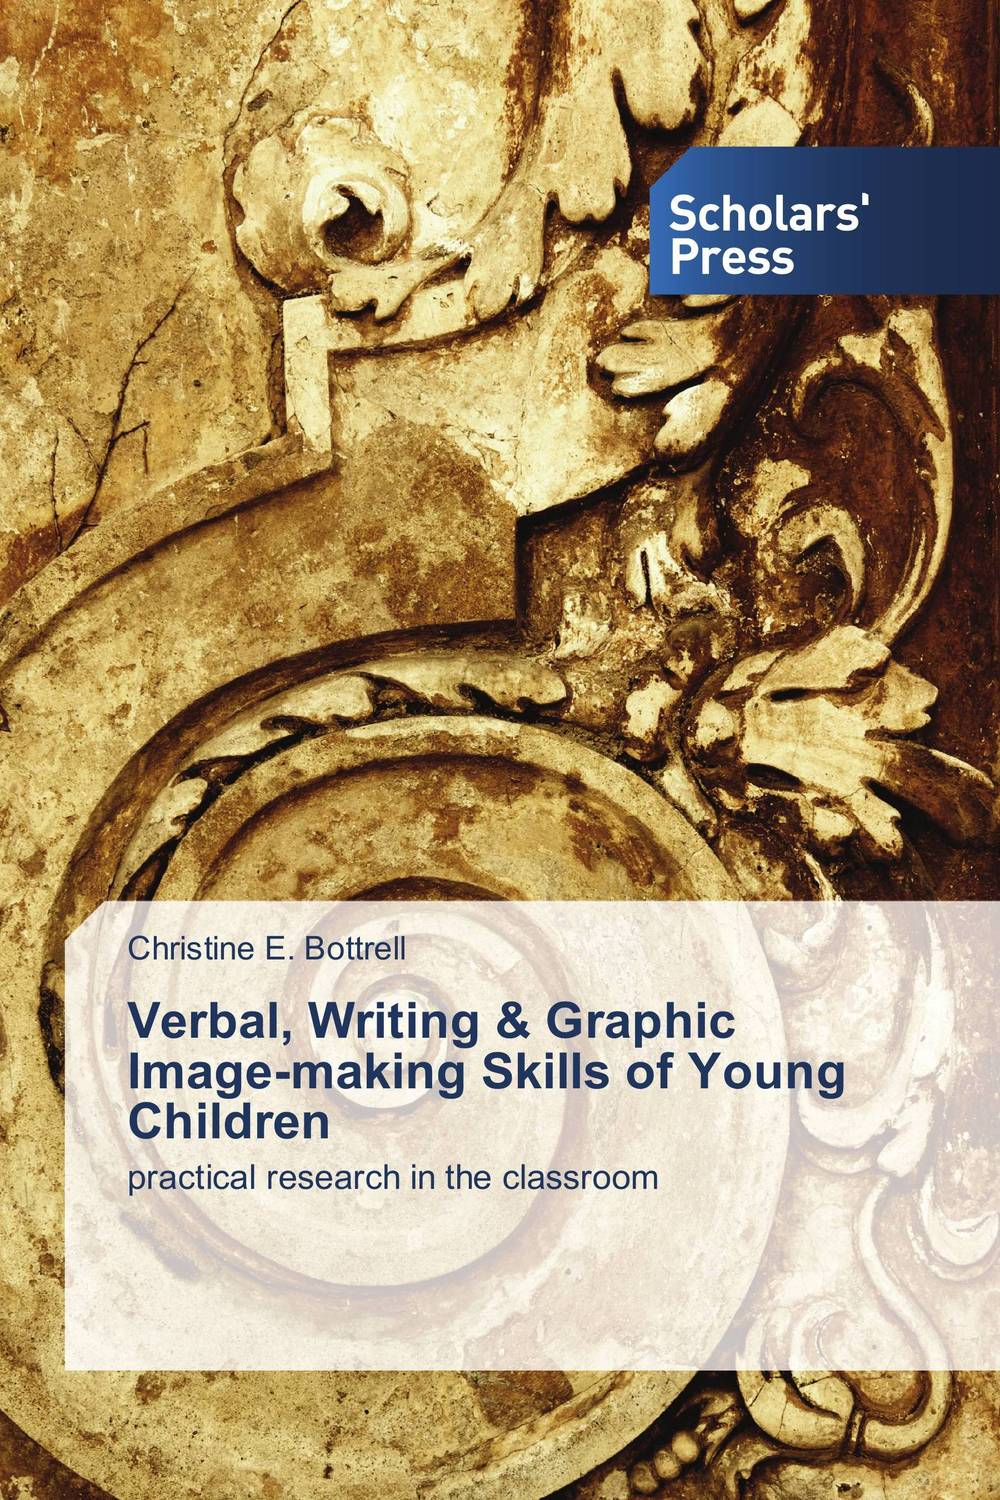 Verbal, Writing & Graphic Image-making Skills of Young Children alan roxburgh missional map making skills for leading in times of transition